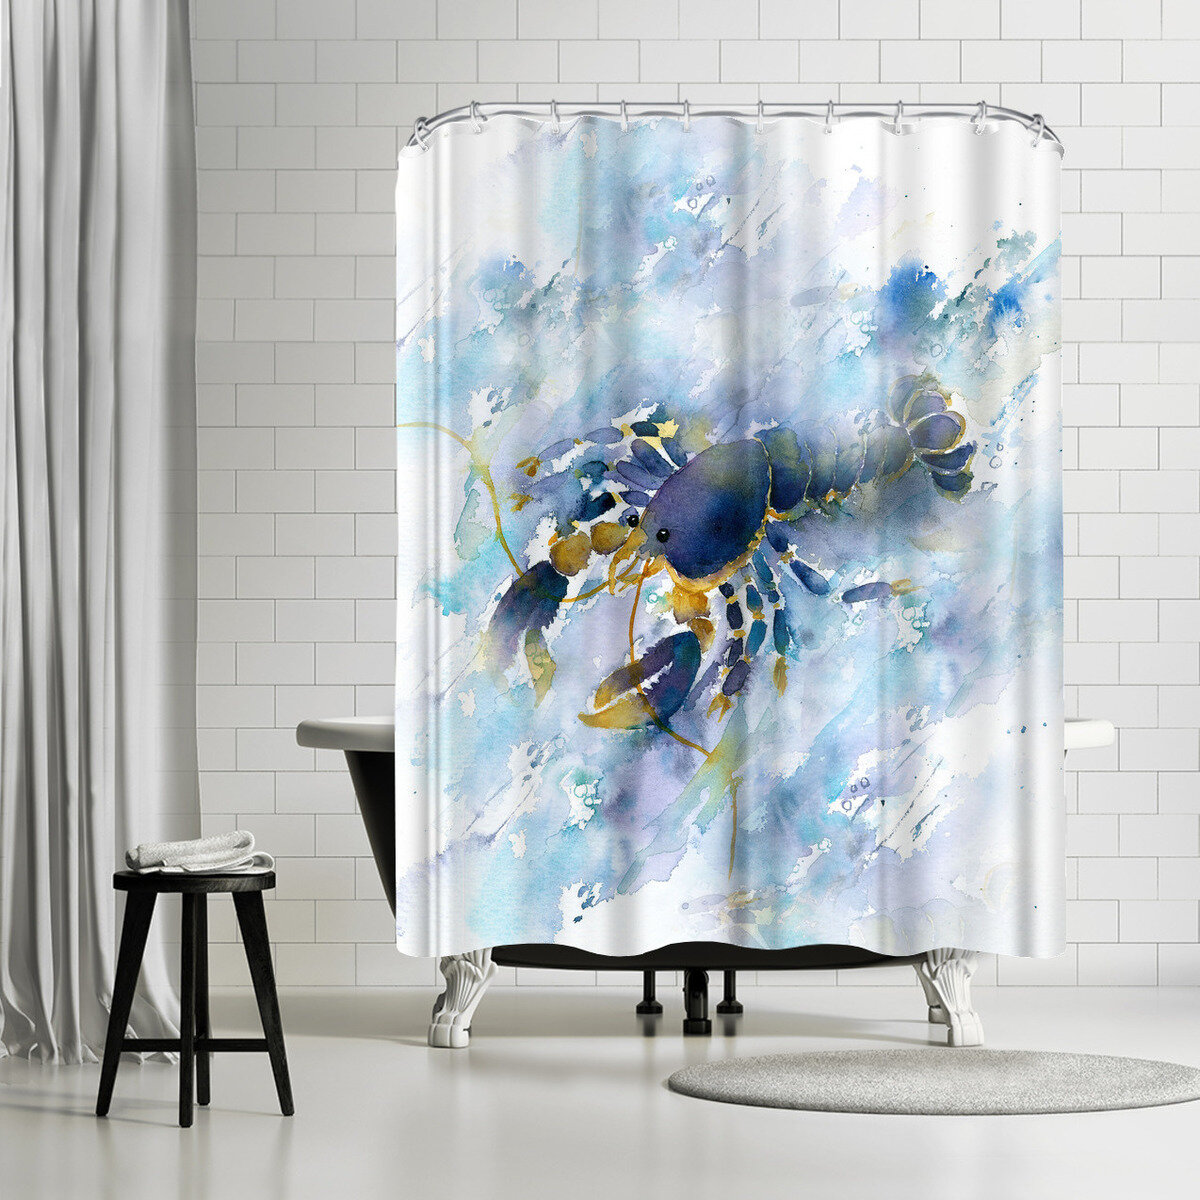 East Urban Home Rachel Mcnaughton Lobster Single Shower Curtain Wayfair